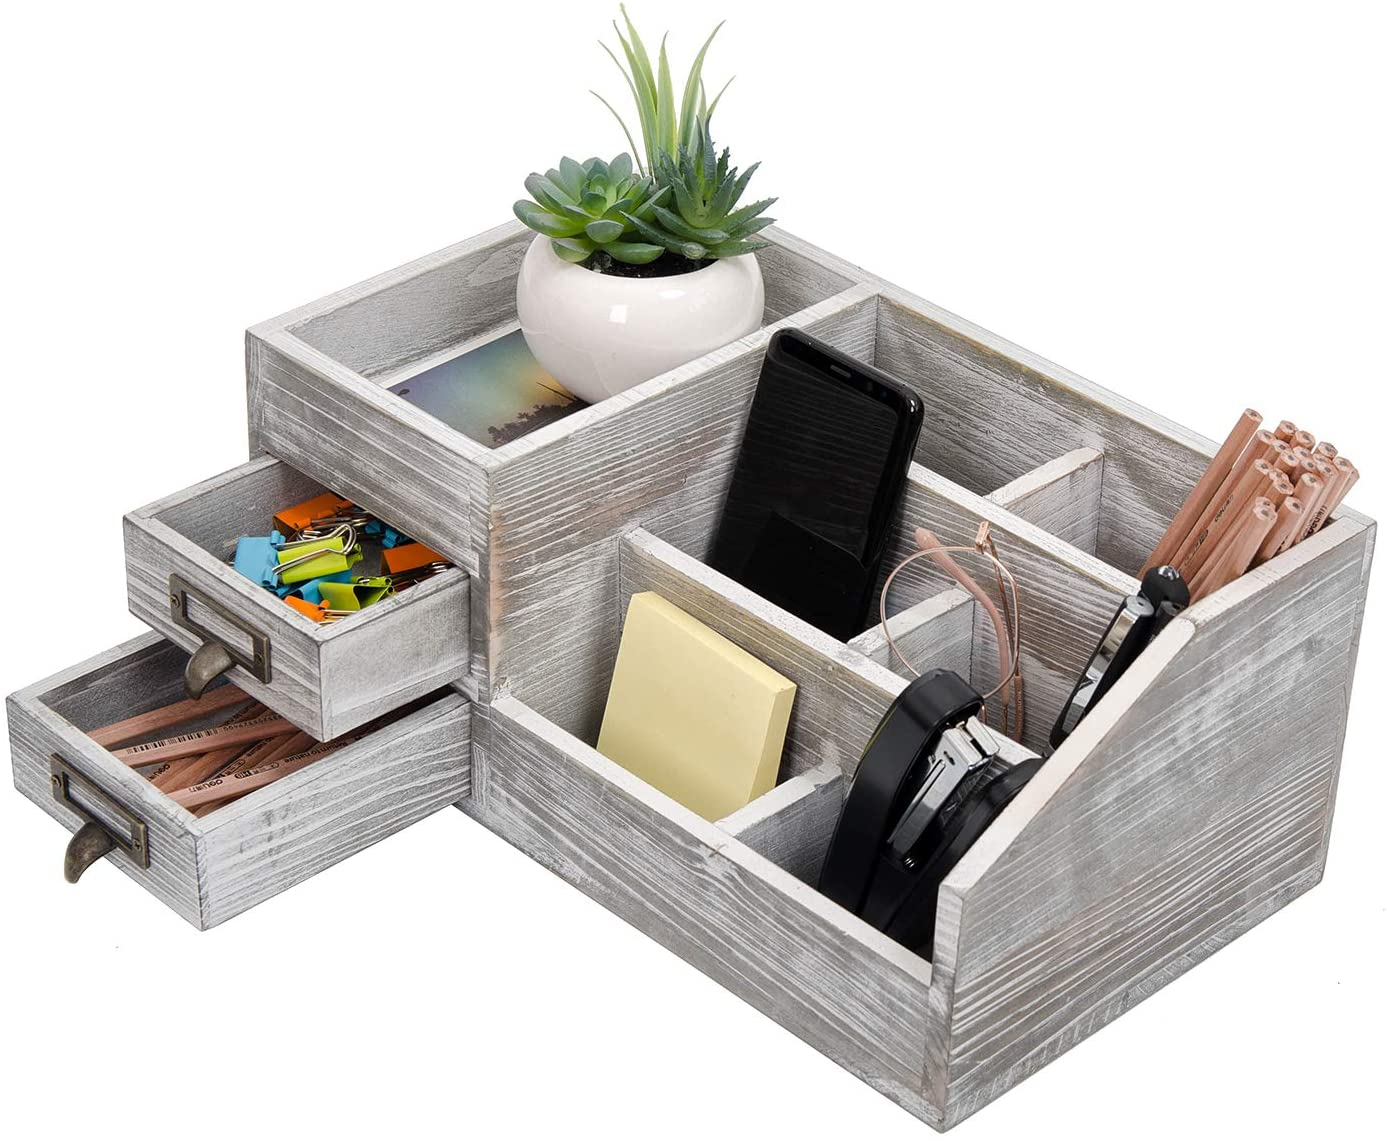 Distressed Rustic Wooden Office Desktop Organizer Wood Shelf Tabletop Home Organizer Storage with Multiple Compartments 2 Tier Drawers,perfect Jewelry storage Display Box for Desk, Vanity (gray)